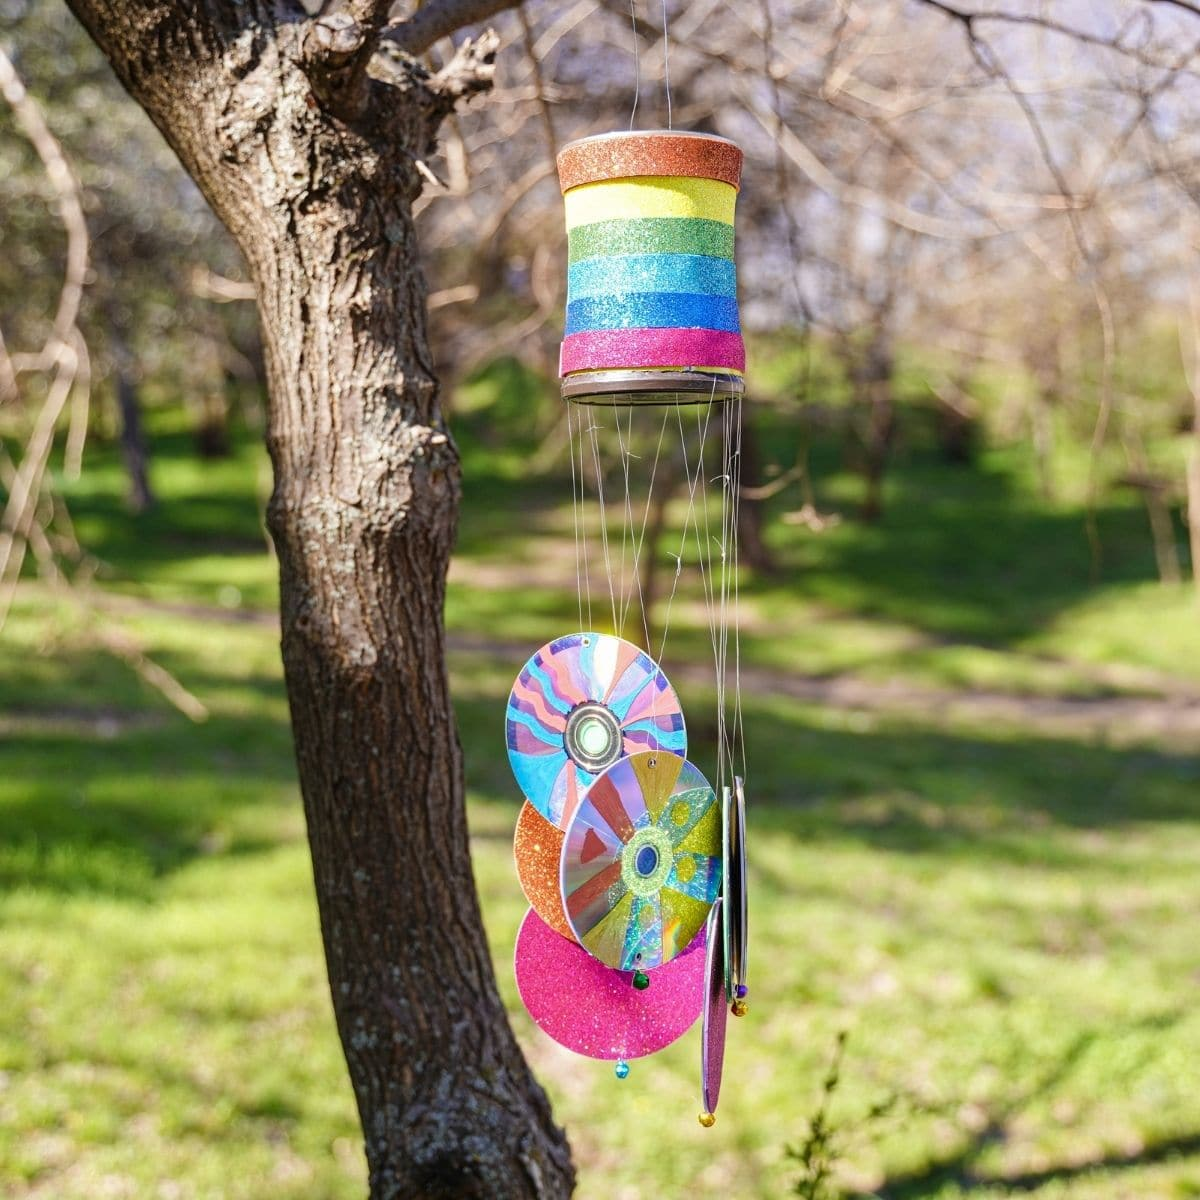 Rainbow wind chime in tree